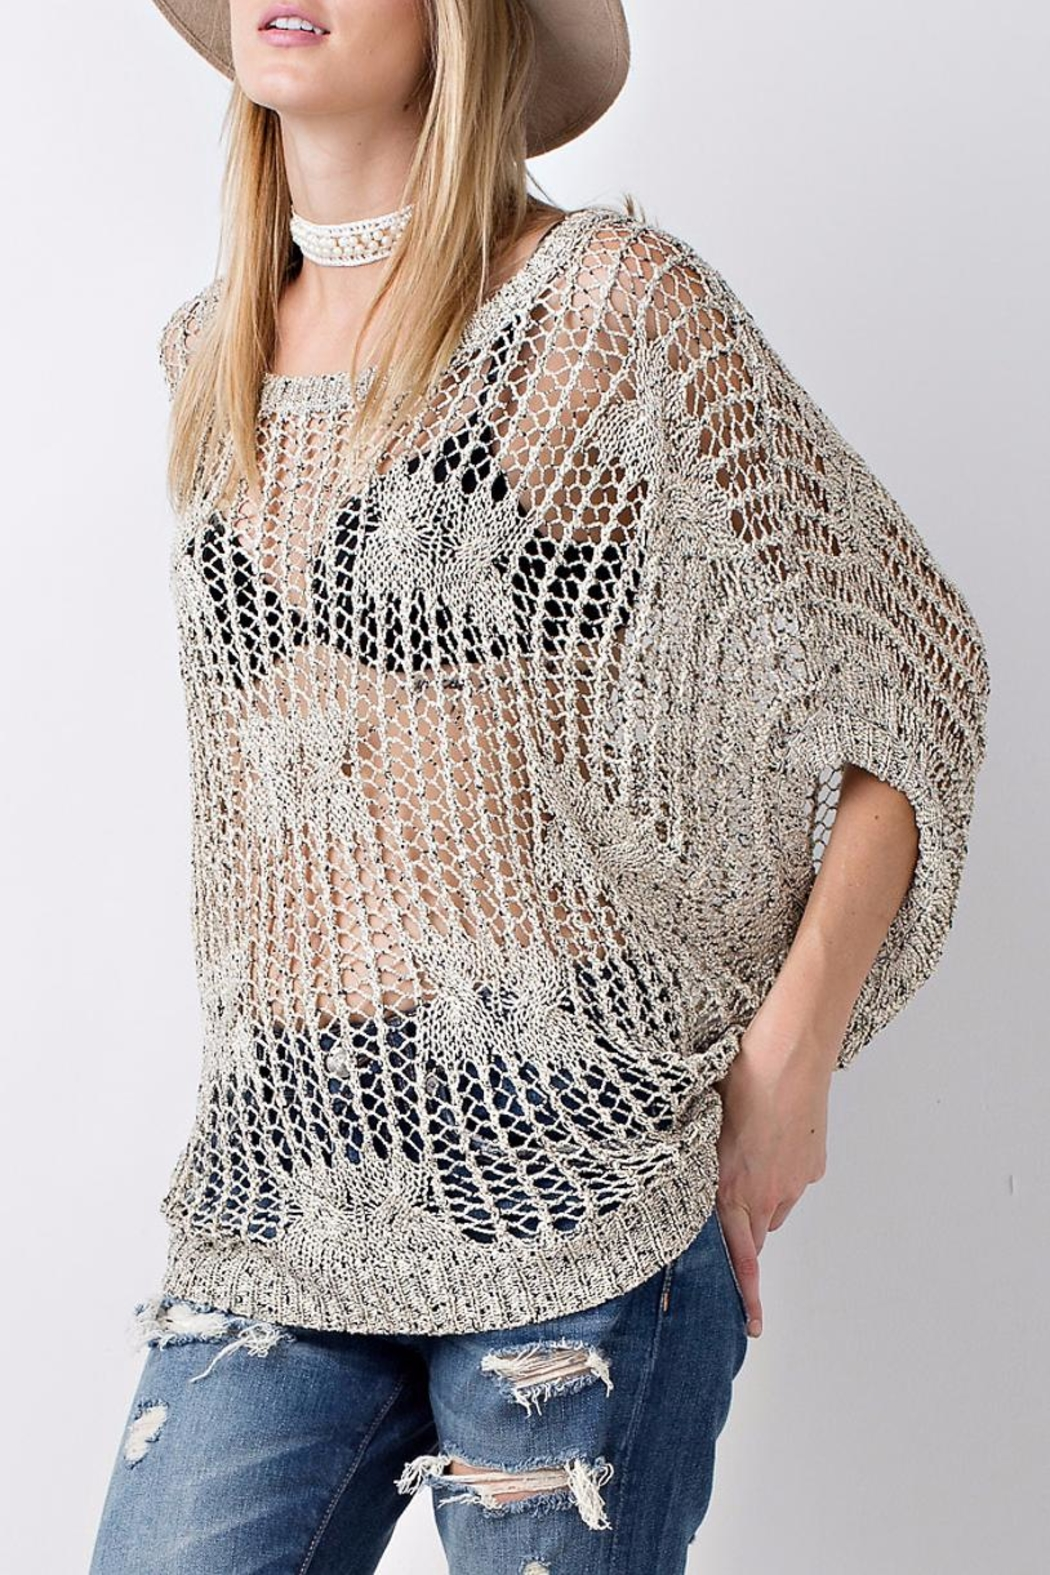 People Outfitter Crochet Knit Sweater Top - Back Cropped Image